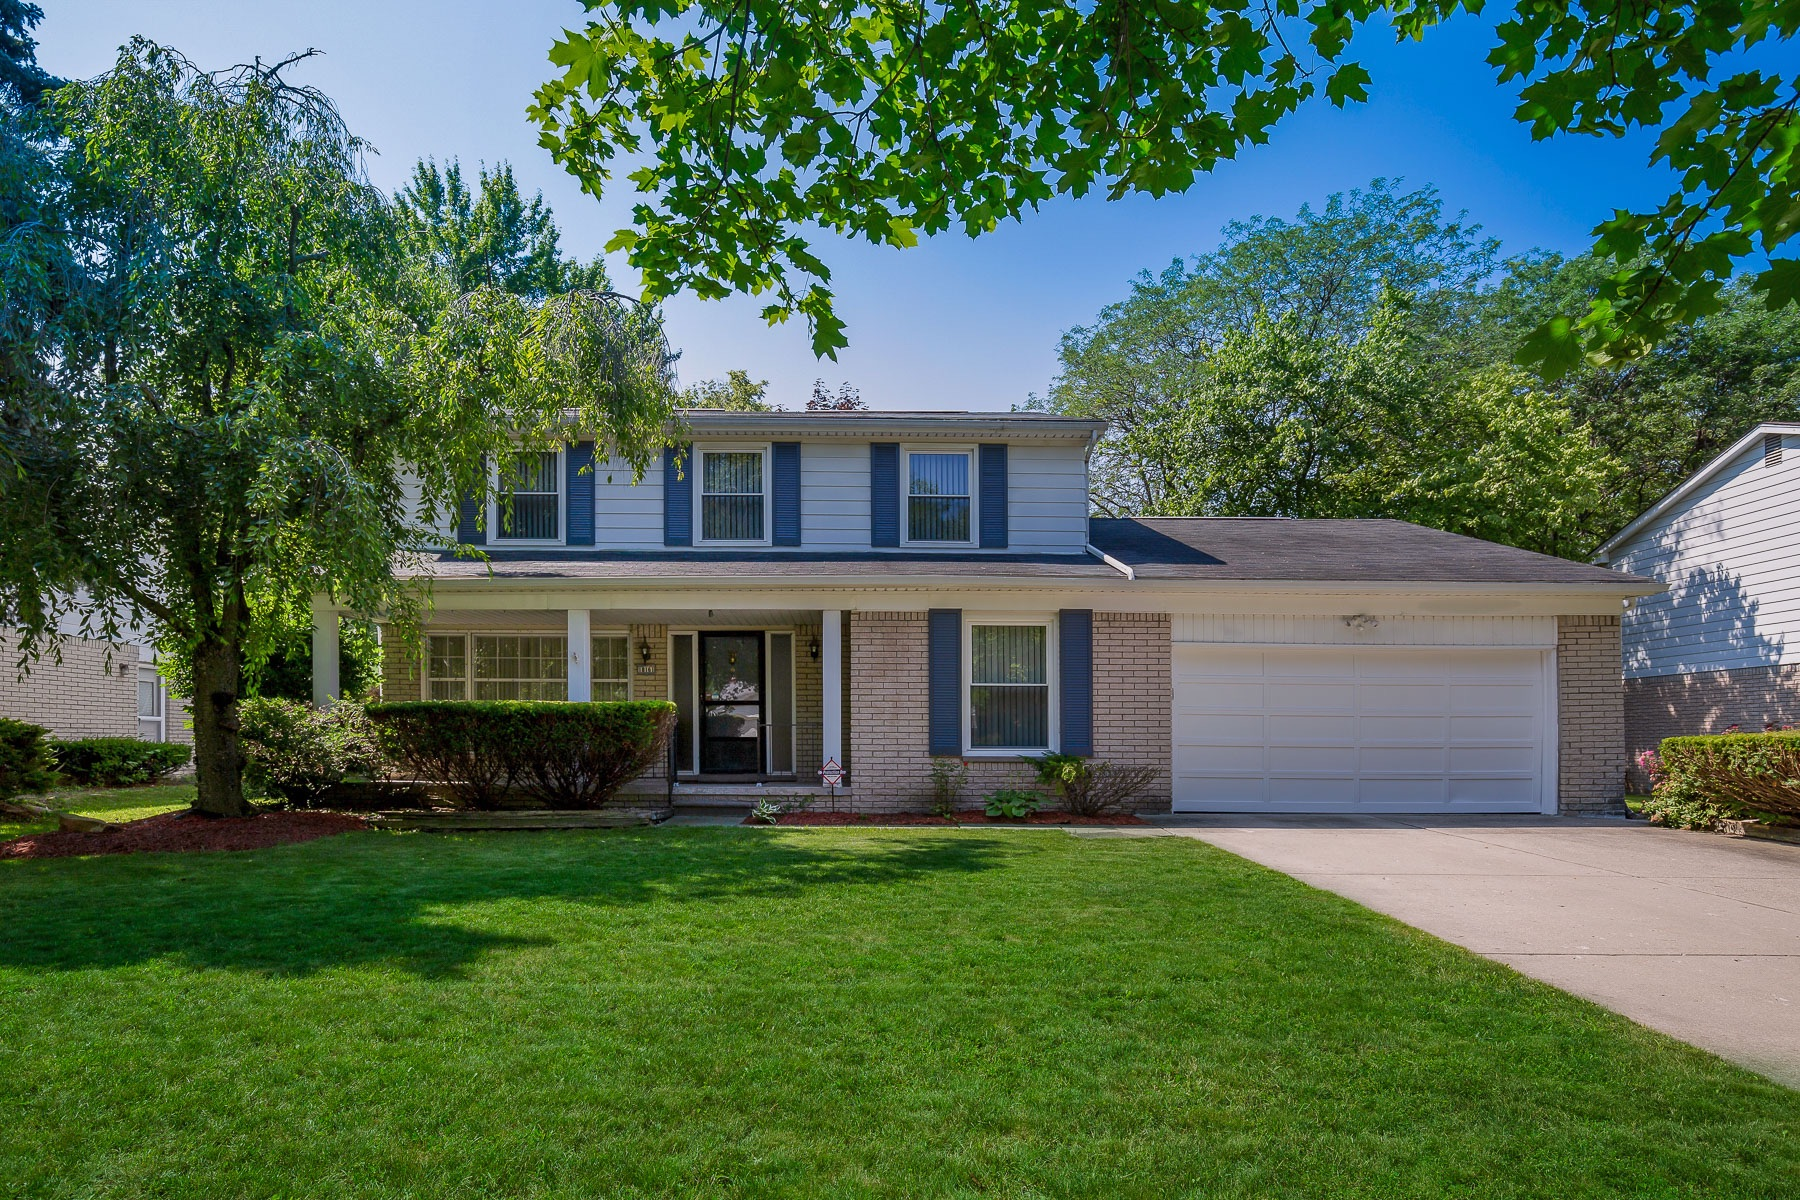 Single Family Homes for Active at Lathrup Village 18161 Ramsgate Dr Lathrup Village, Michigan 48076 United States